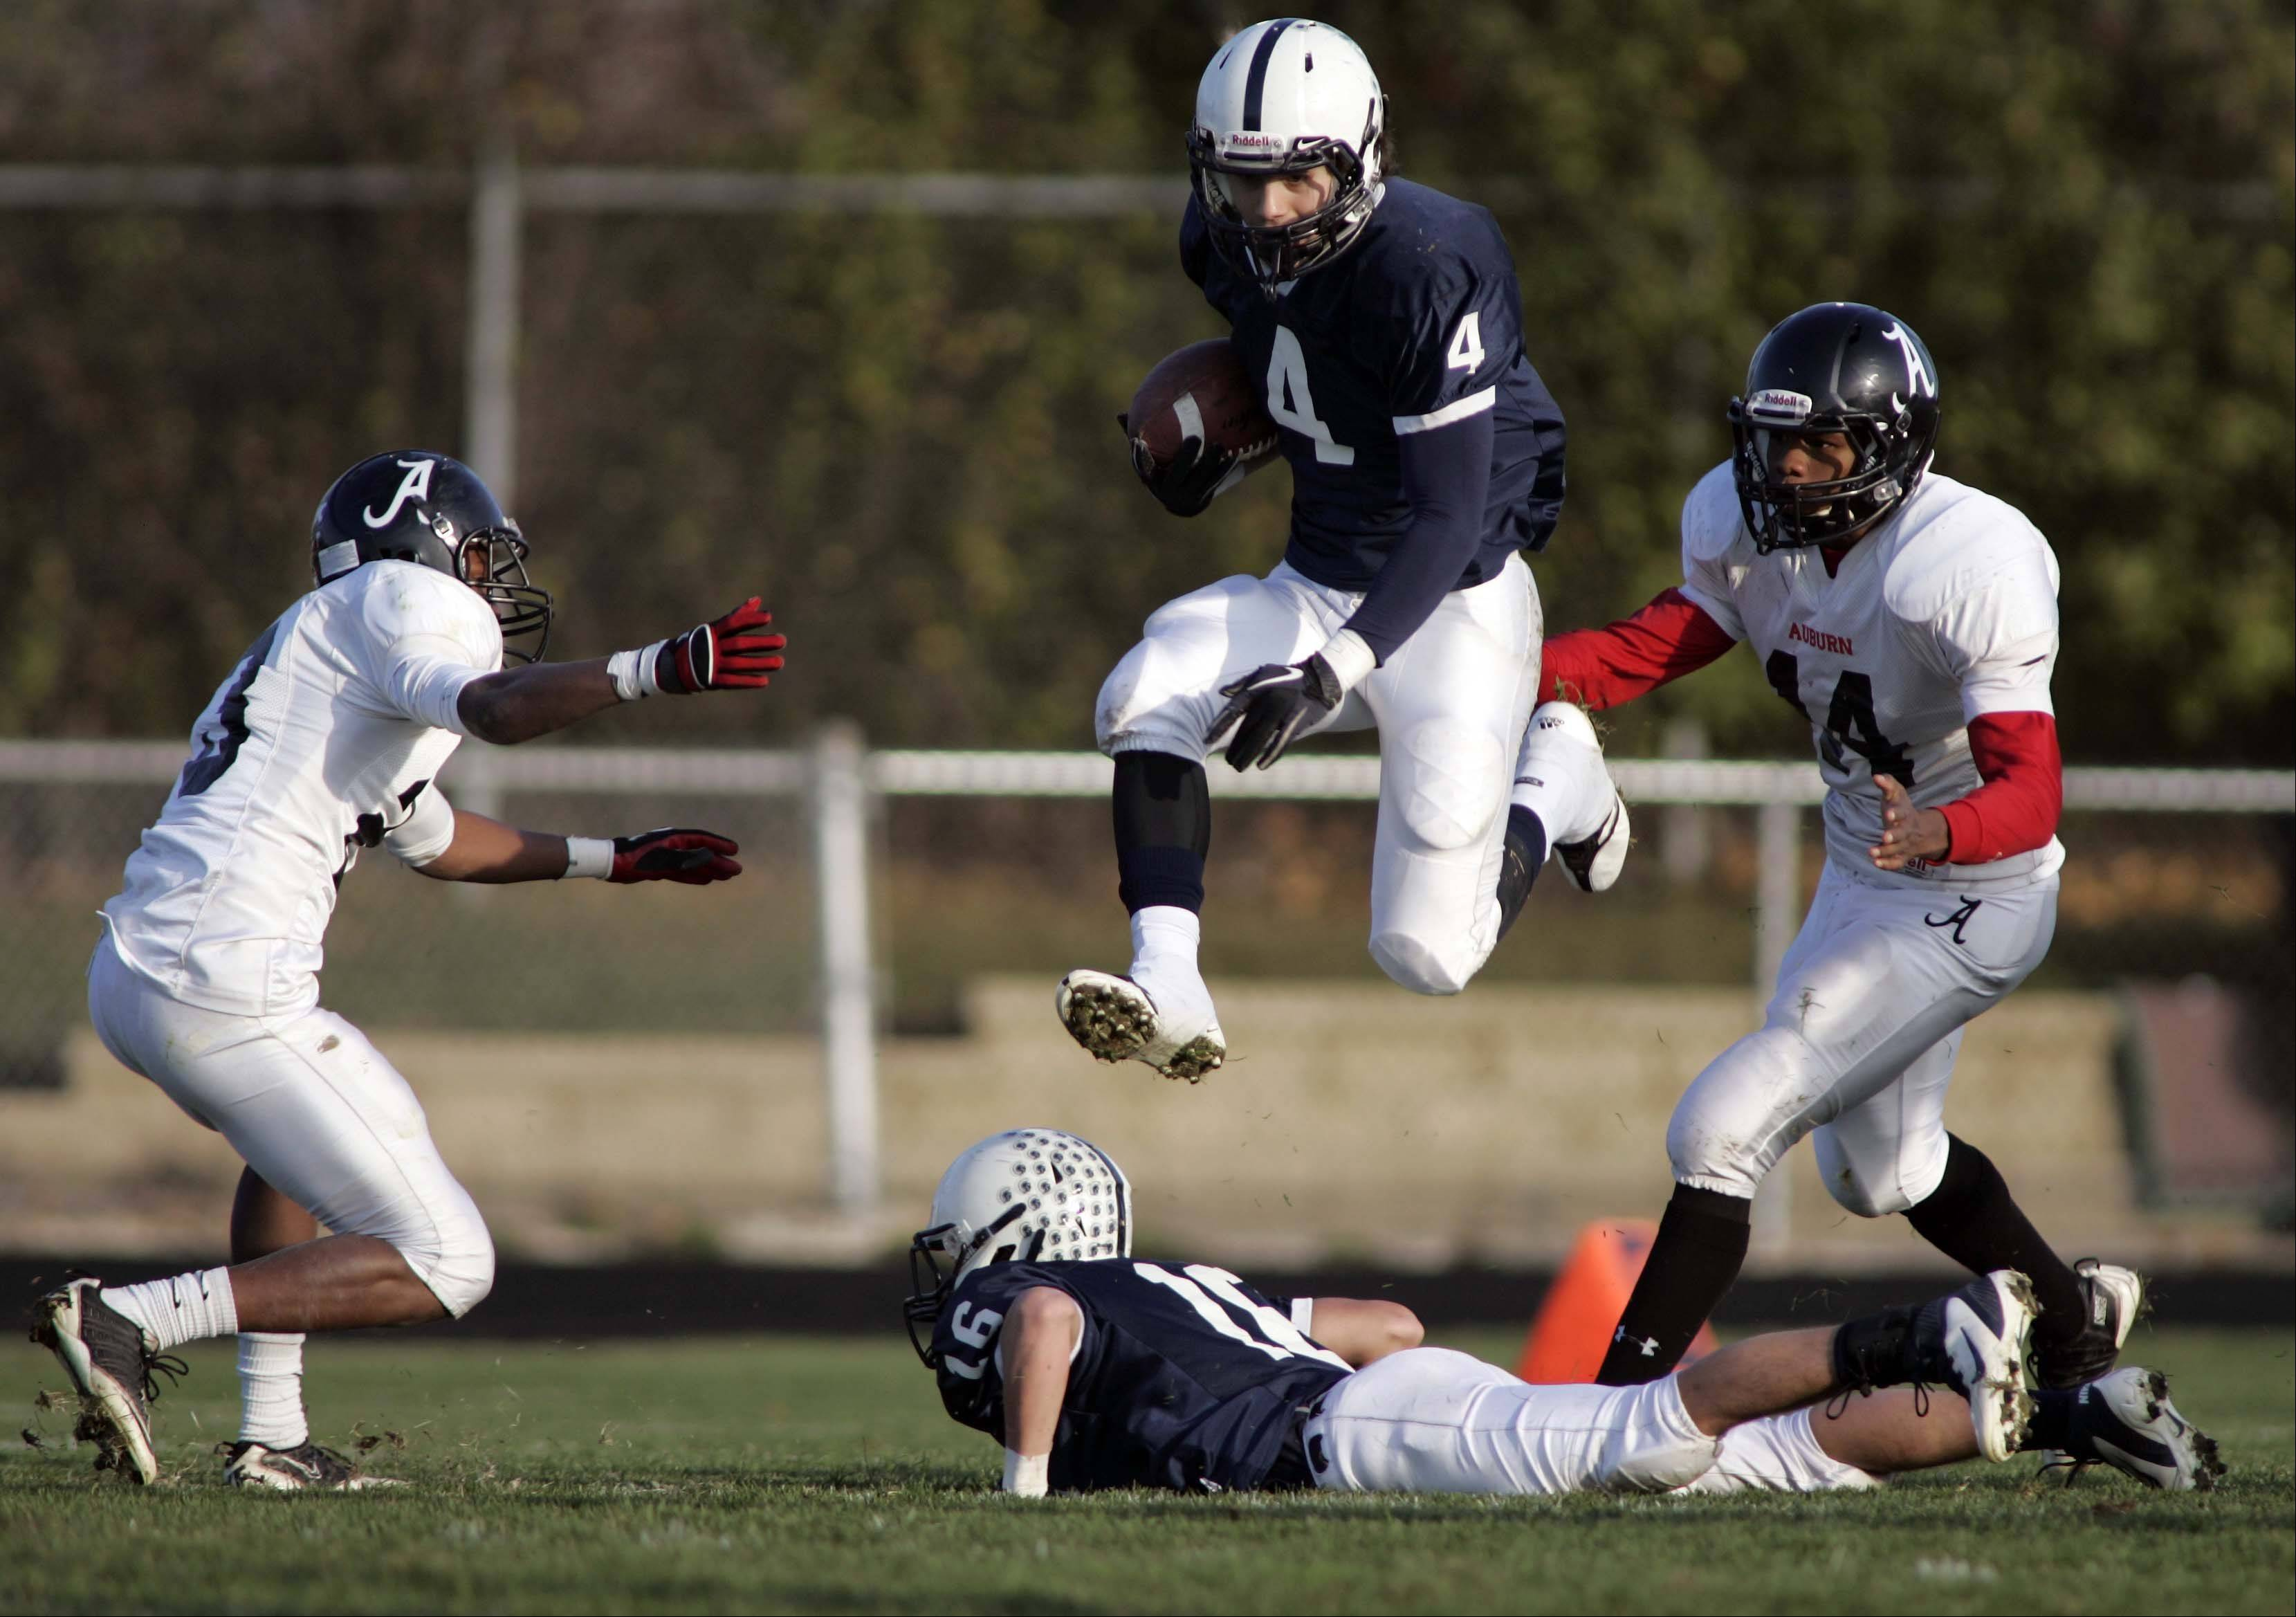 Cary-Grove's Ryan Mahoney, 4, leaps over Kaene Connington for extra yards against Rockford Auburn during Saturday's Class 6A playoff football game.